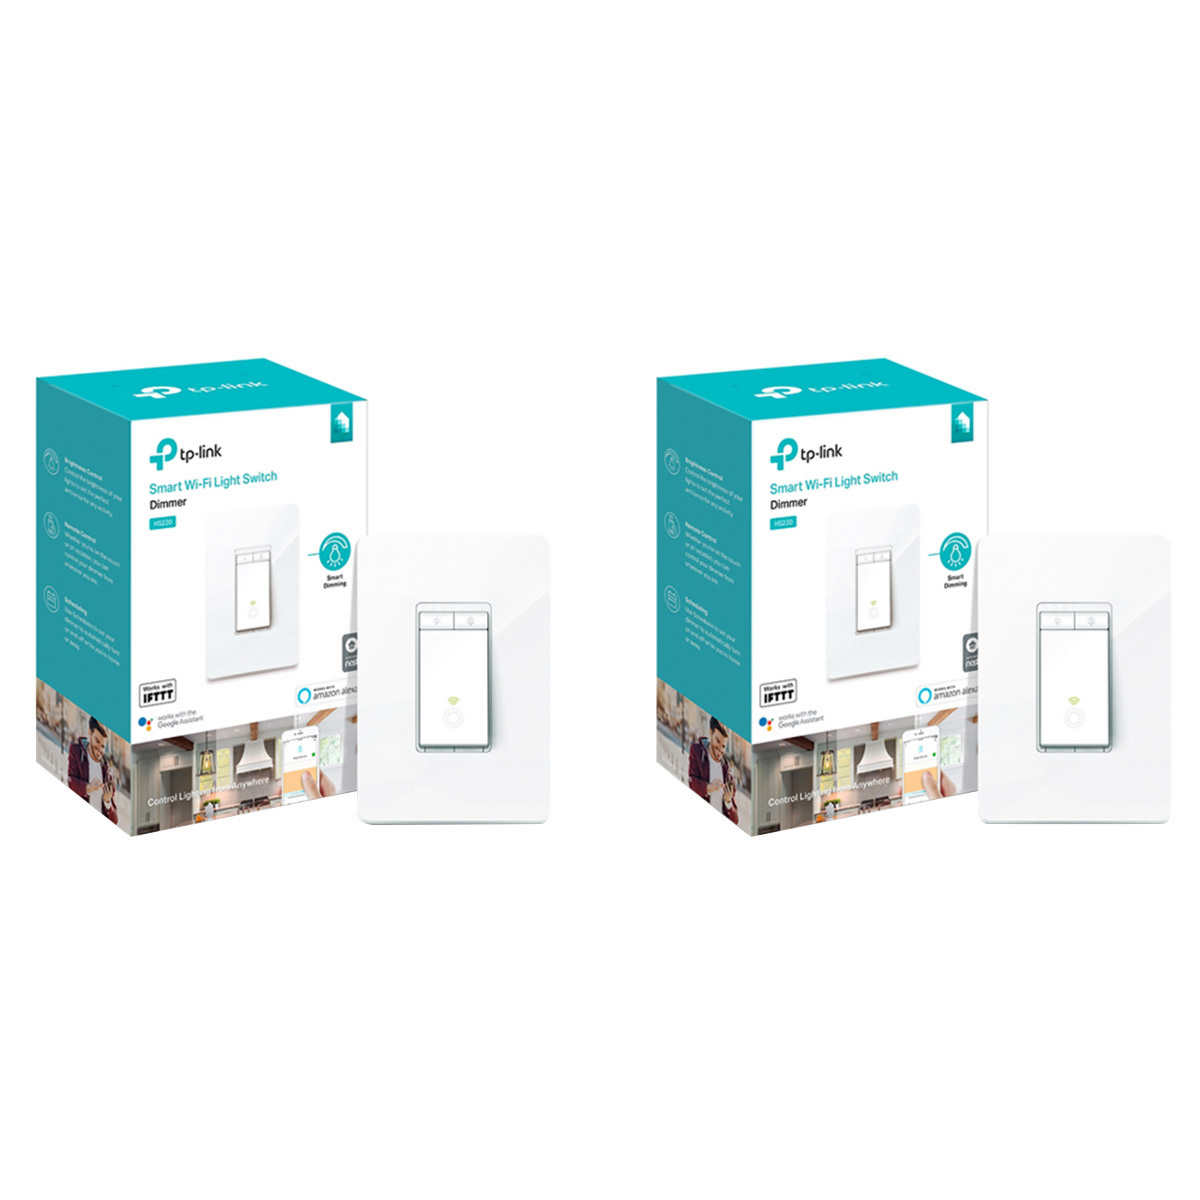 TP Link Smart Dimmer Switch, 2-pack